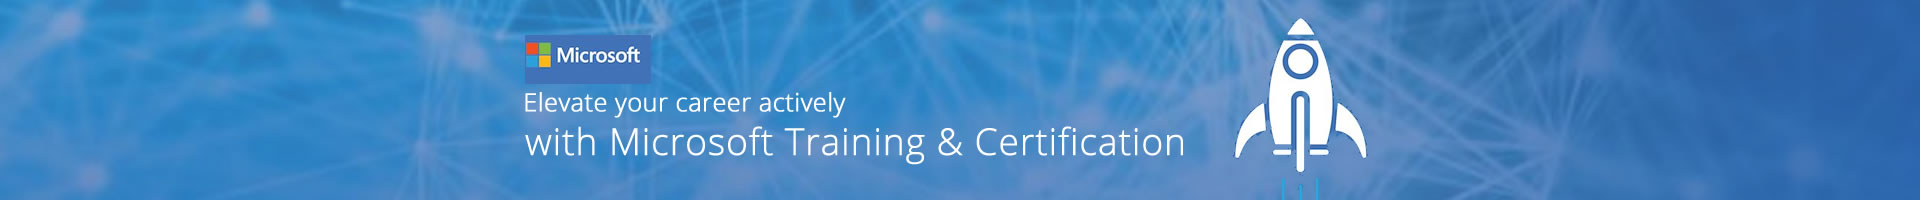 MCA: Azure Administrator Certification Boot Camp - 6 Days @ $4500. Microsoft Cloud Certificaiton, Microsoft Certified Azure Administrator Associate, MICROSOFT Boot camps, Microsoft Training, MCSE San Mateo, California, Maryland, Baltimore